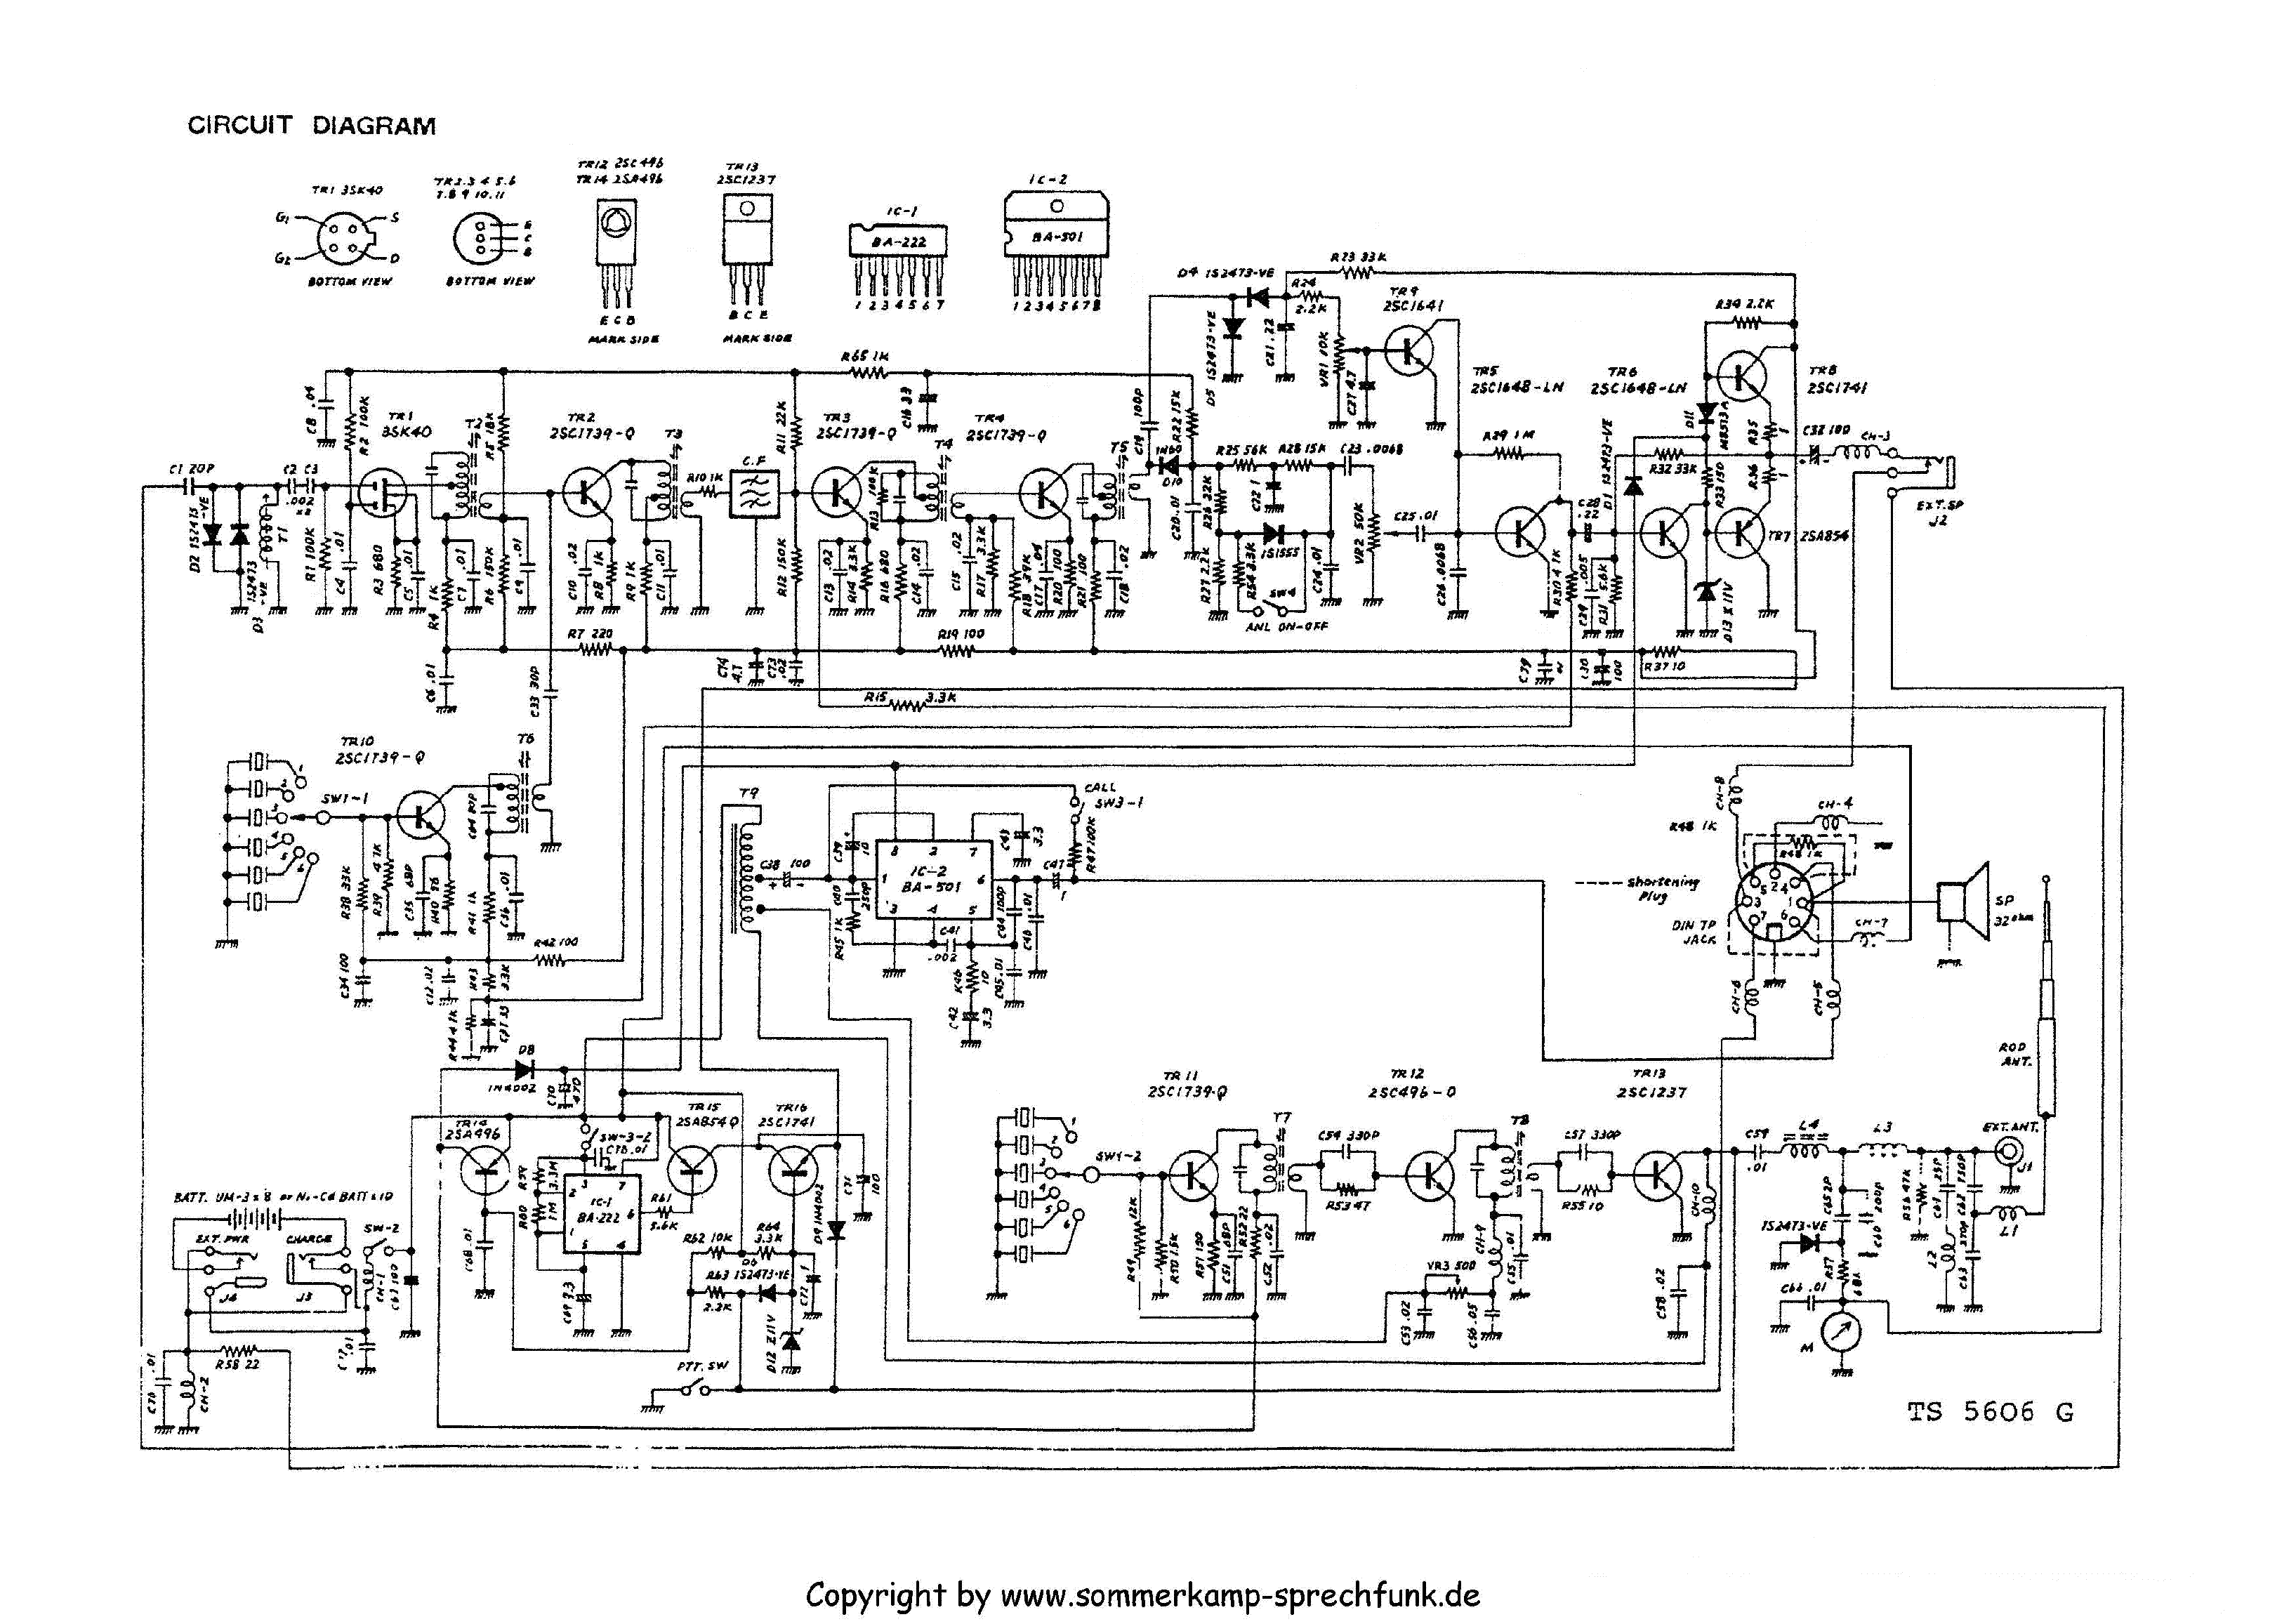 Maxresdefault in addition Cdi together with D Xc Polaris Indy besides Sommerk  Ts G Ch W Cb Transceiver Sch Pdf together with Page. on 1994 polaris indy 500 efi wiring diagram